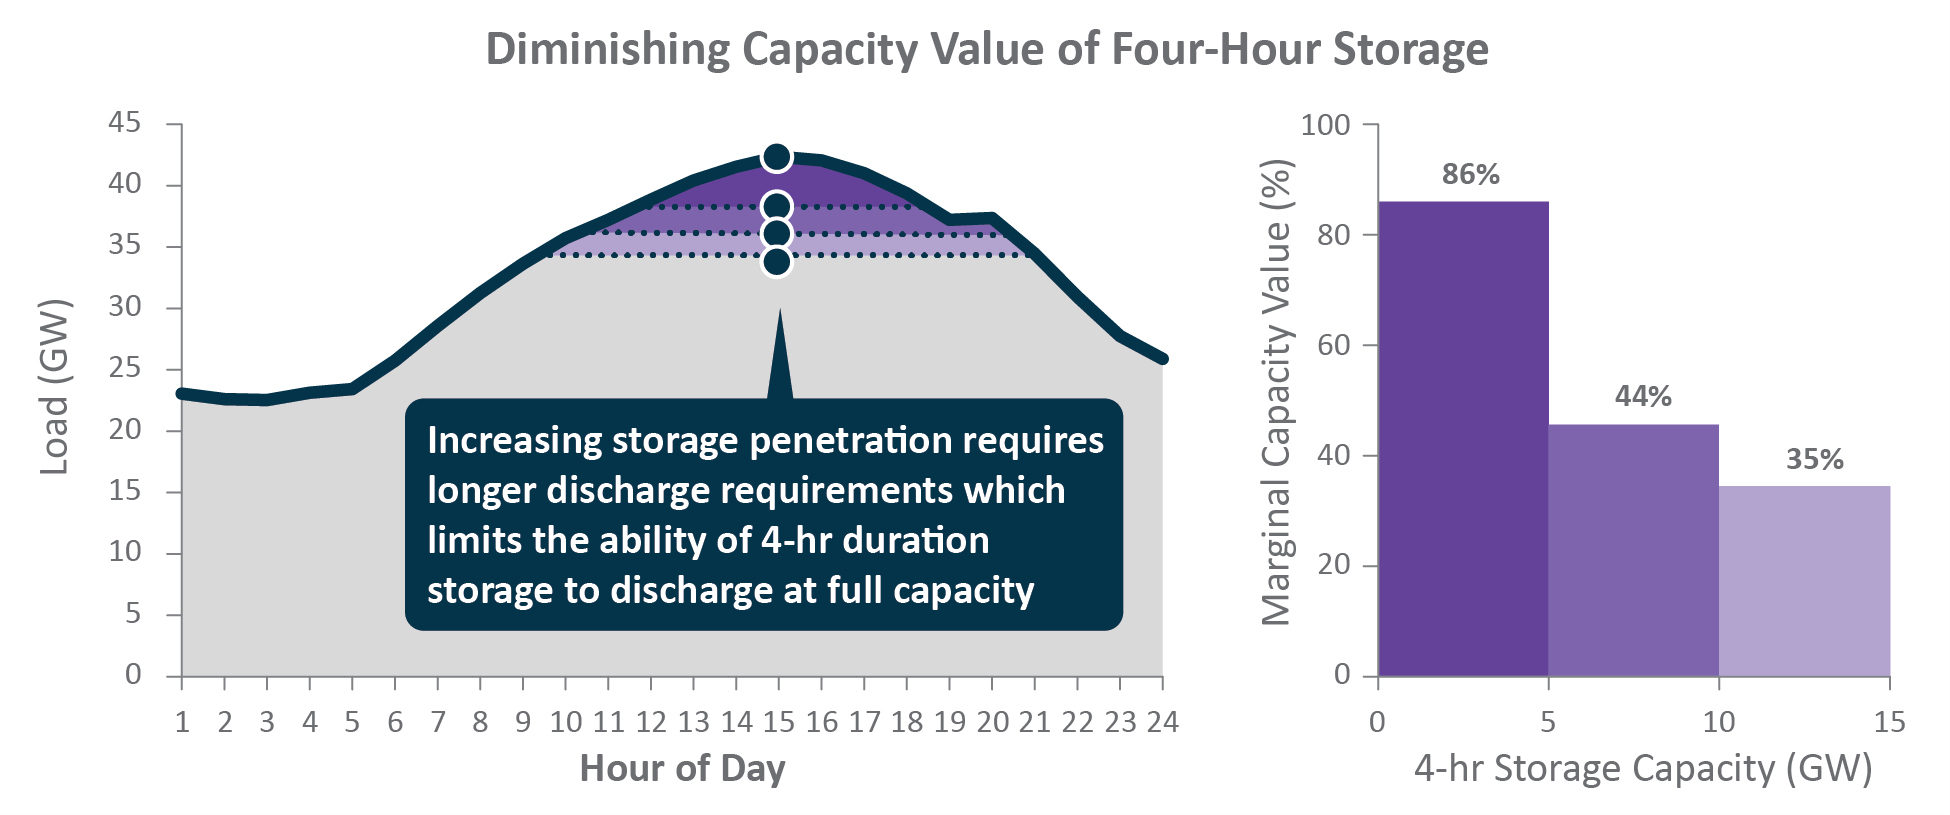 Diminishing Capacity Value of 4-Hour Storage